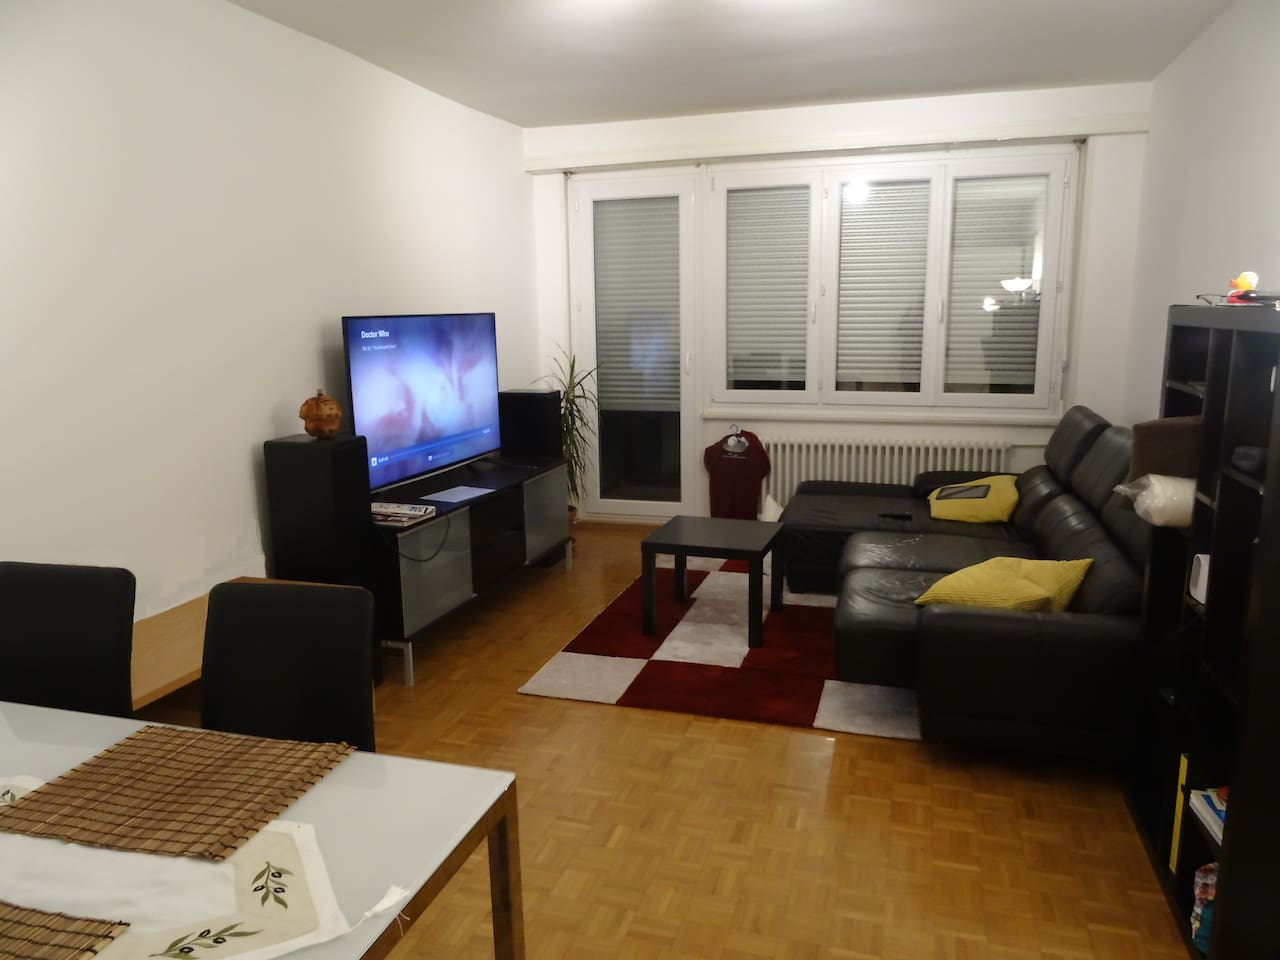 Living room with dining table, sofa and TV